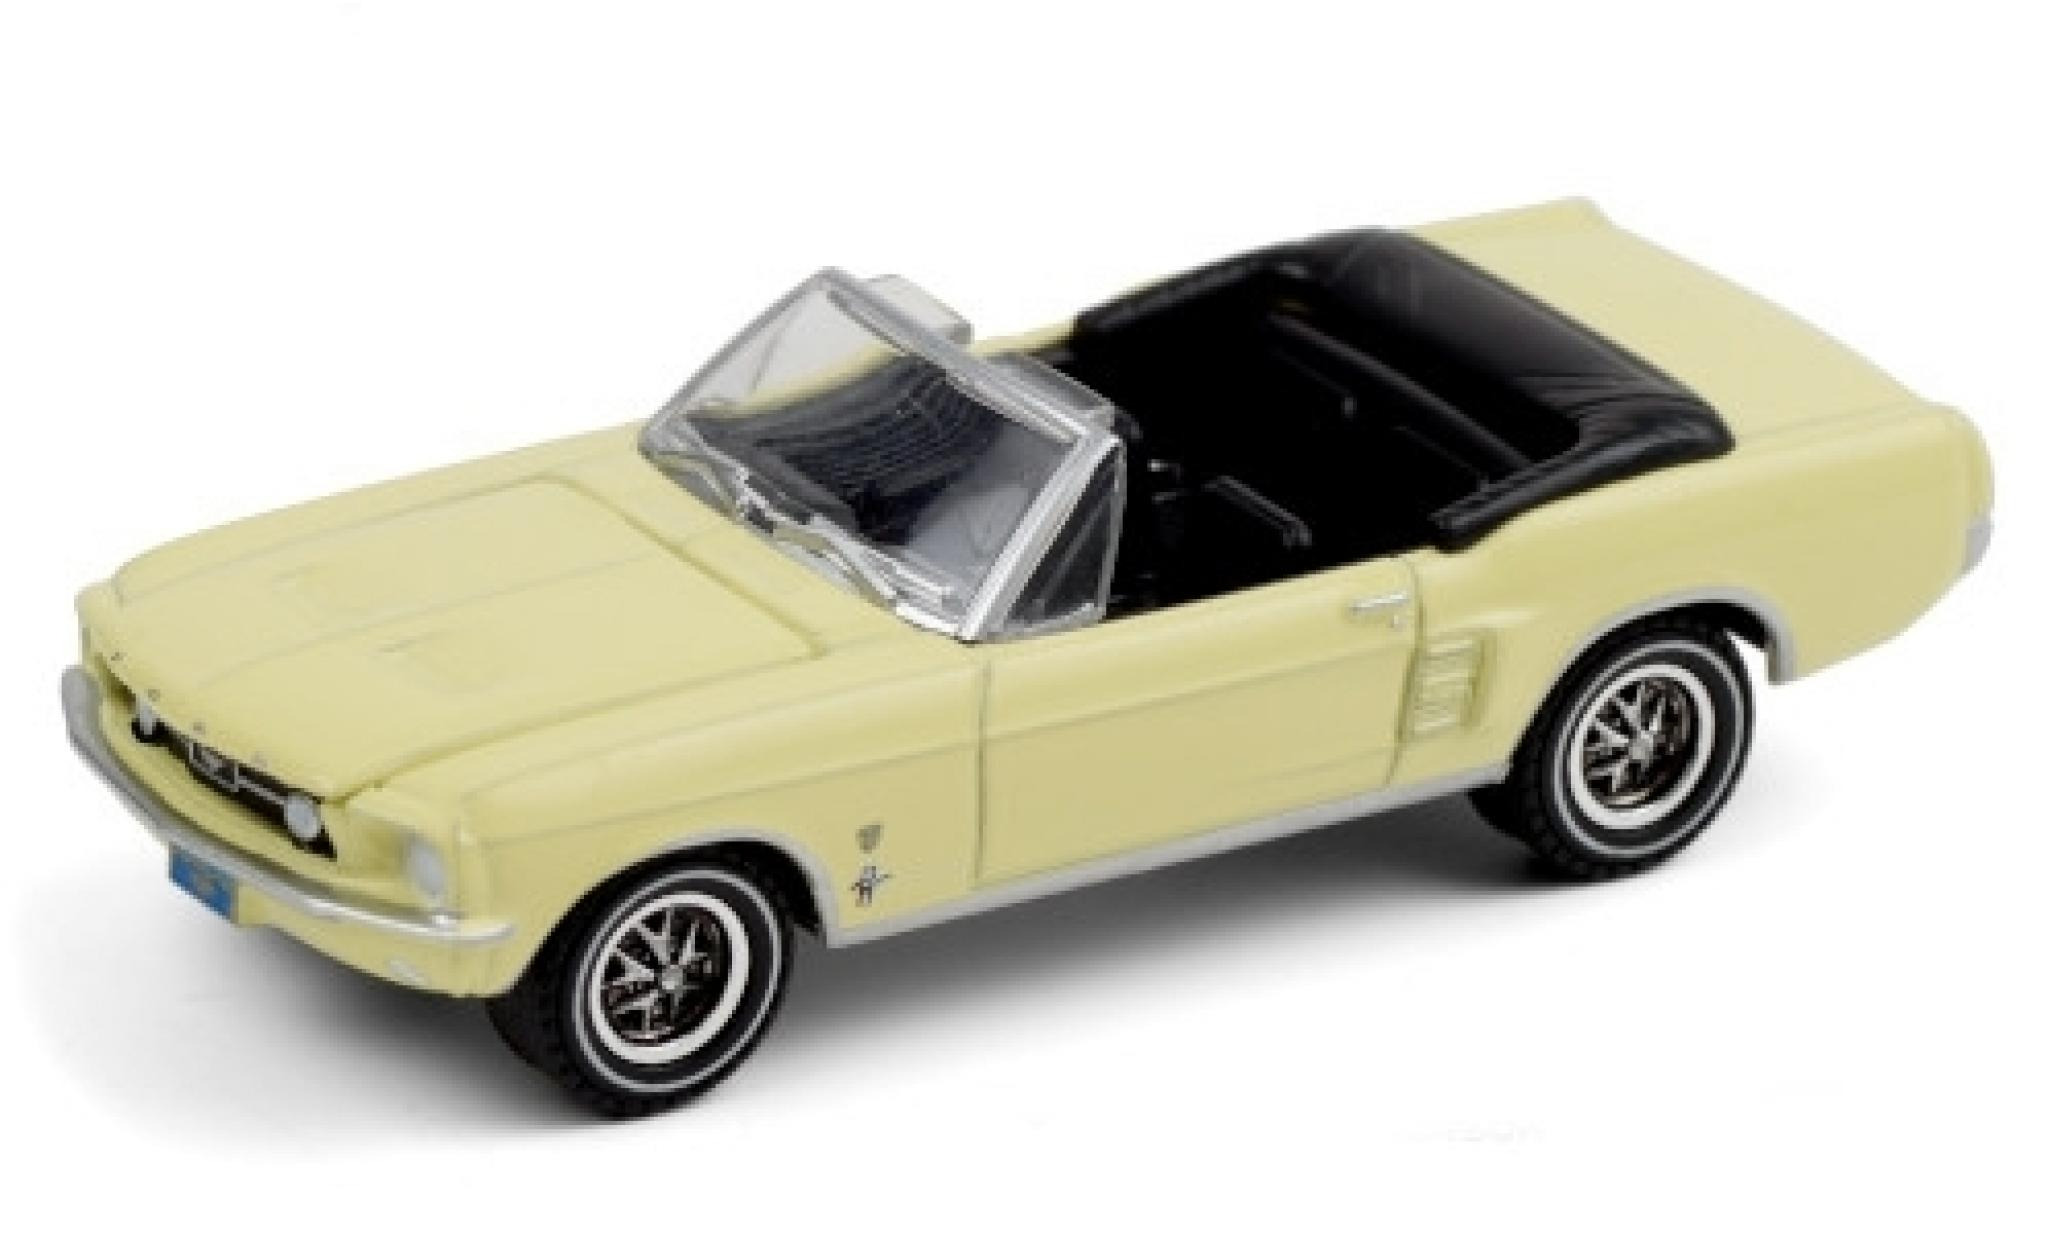 Ford Mustang 1/64 Greenlight Convertible High Country Special yellow 1967